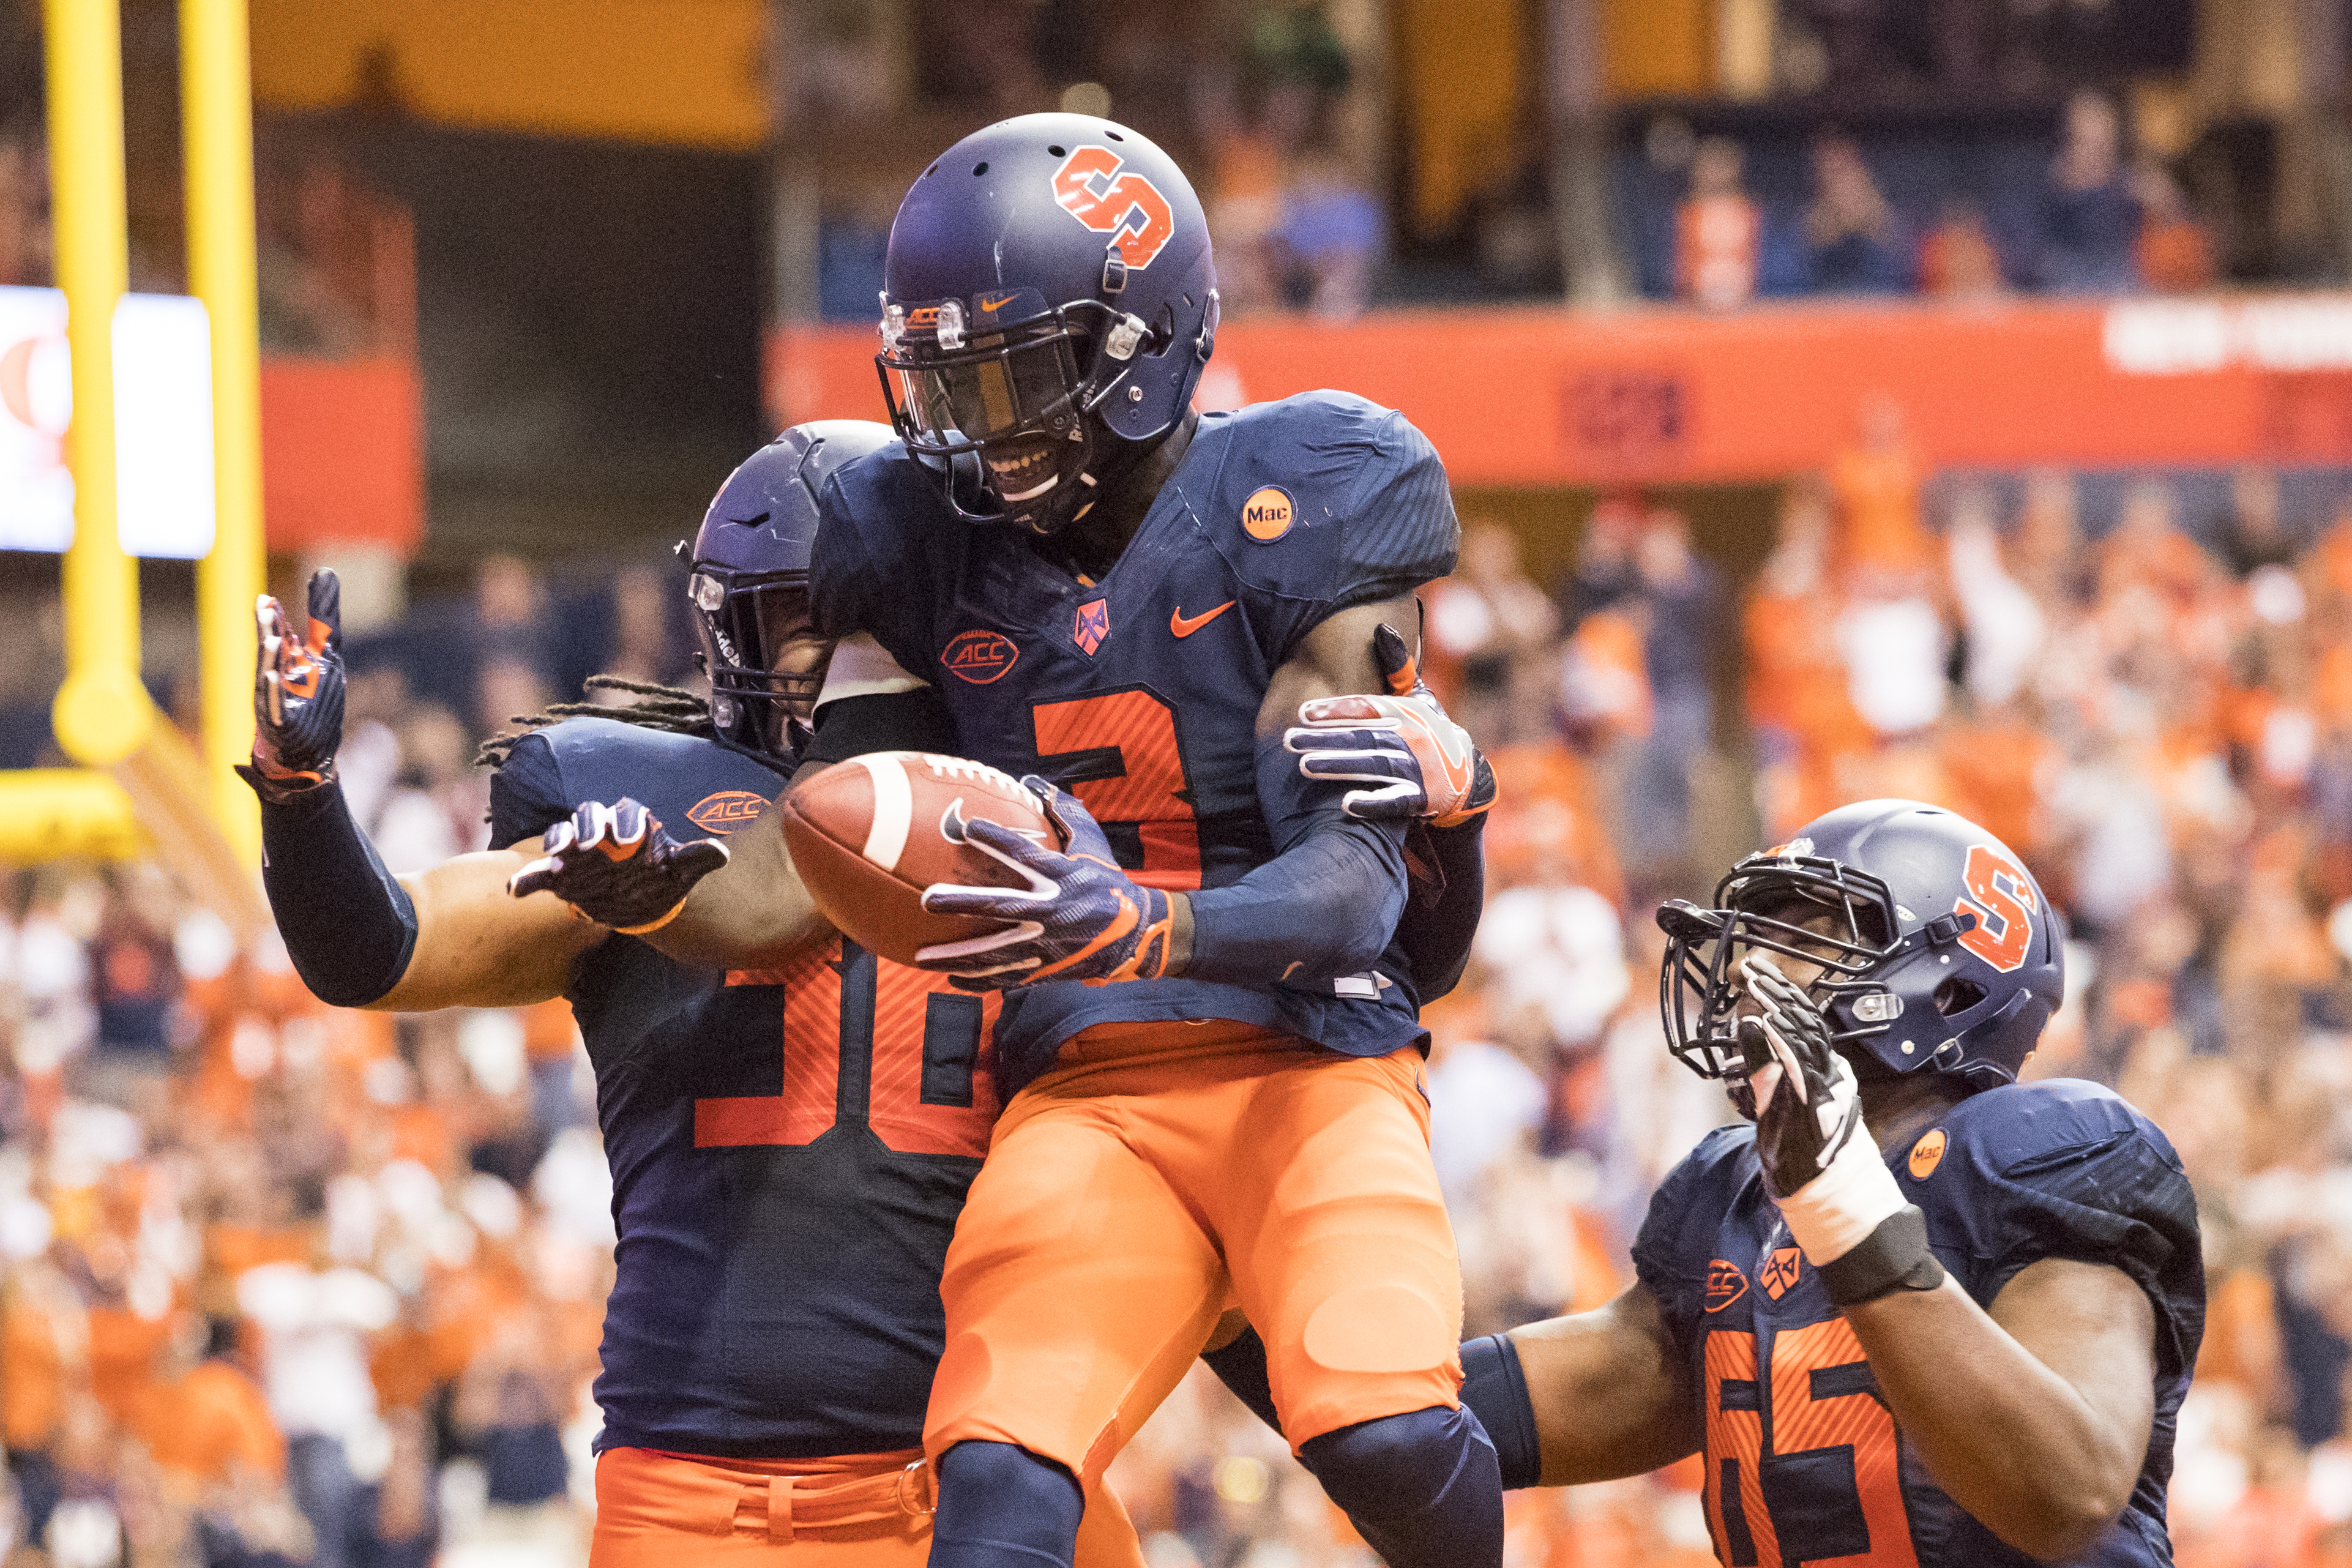 Central Connecticut State v Syracuse